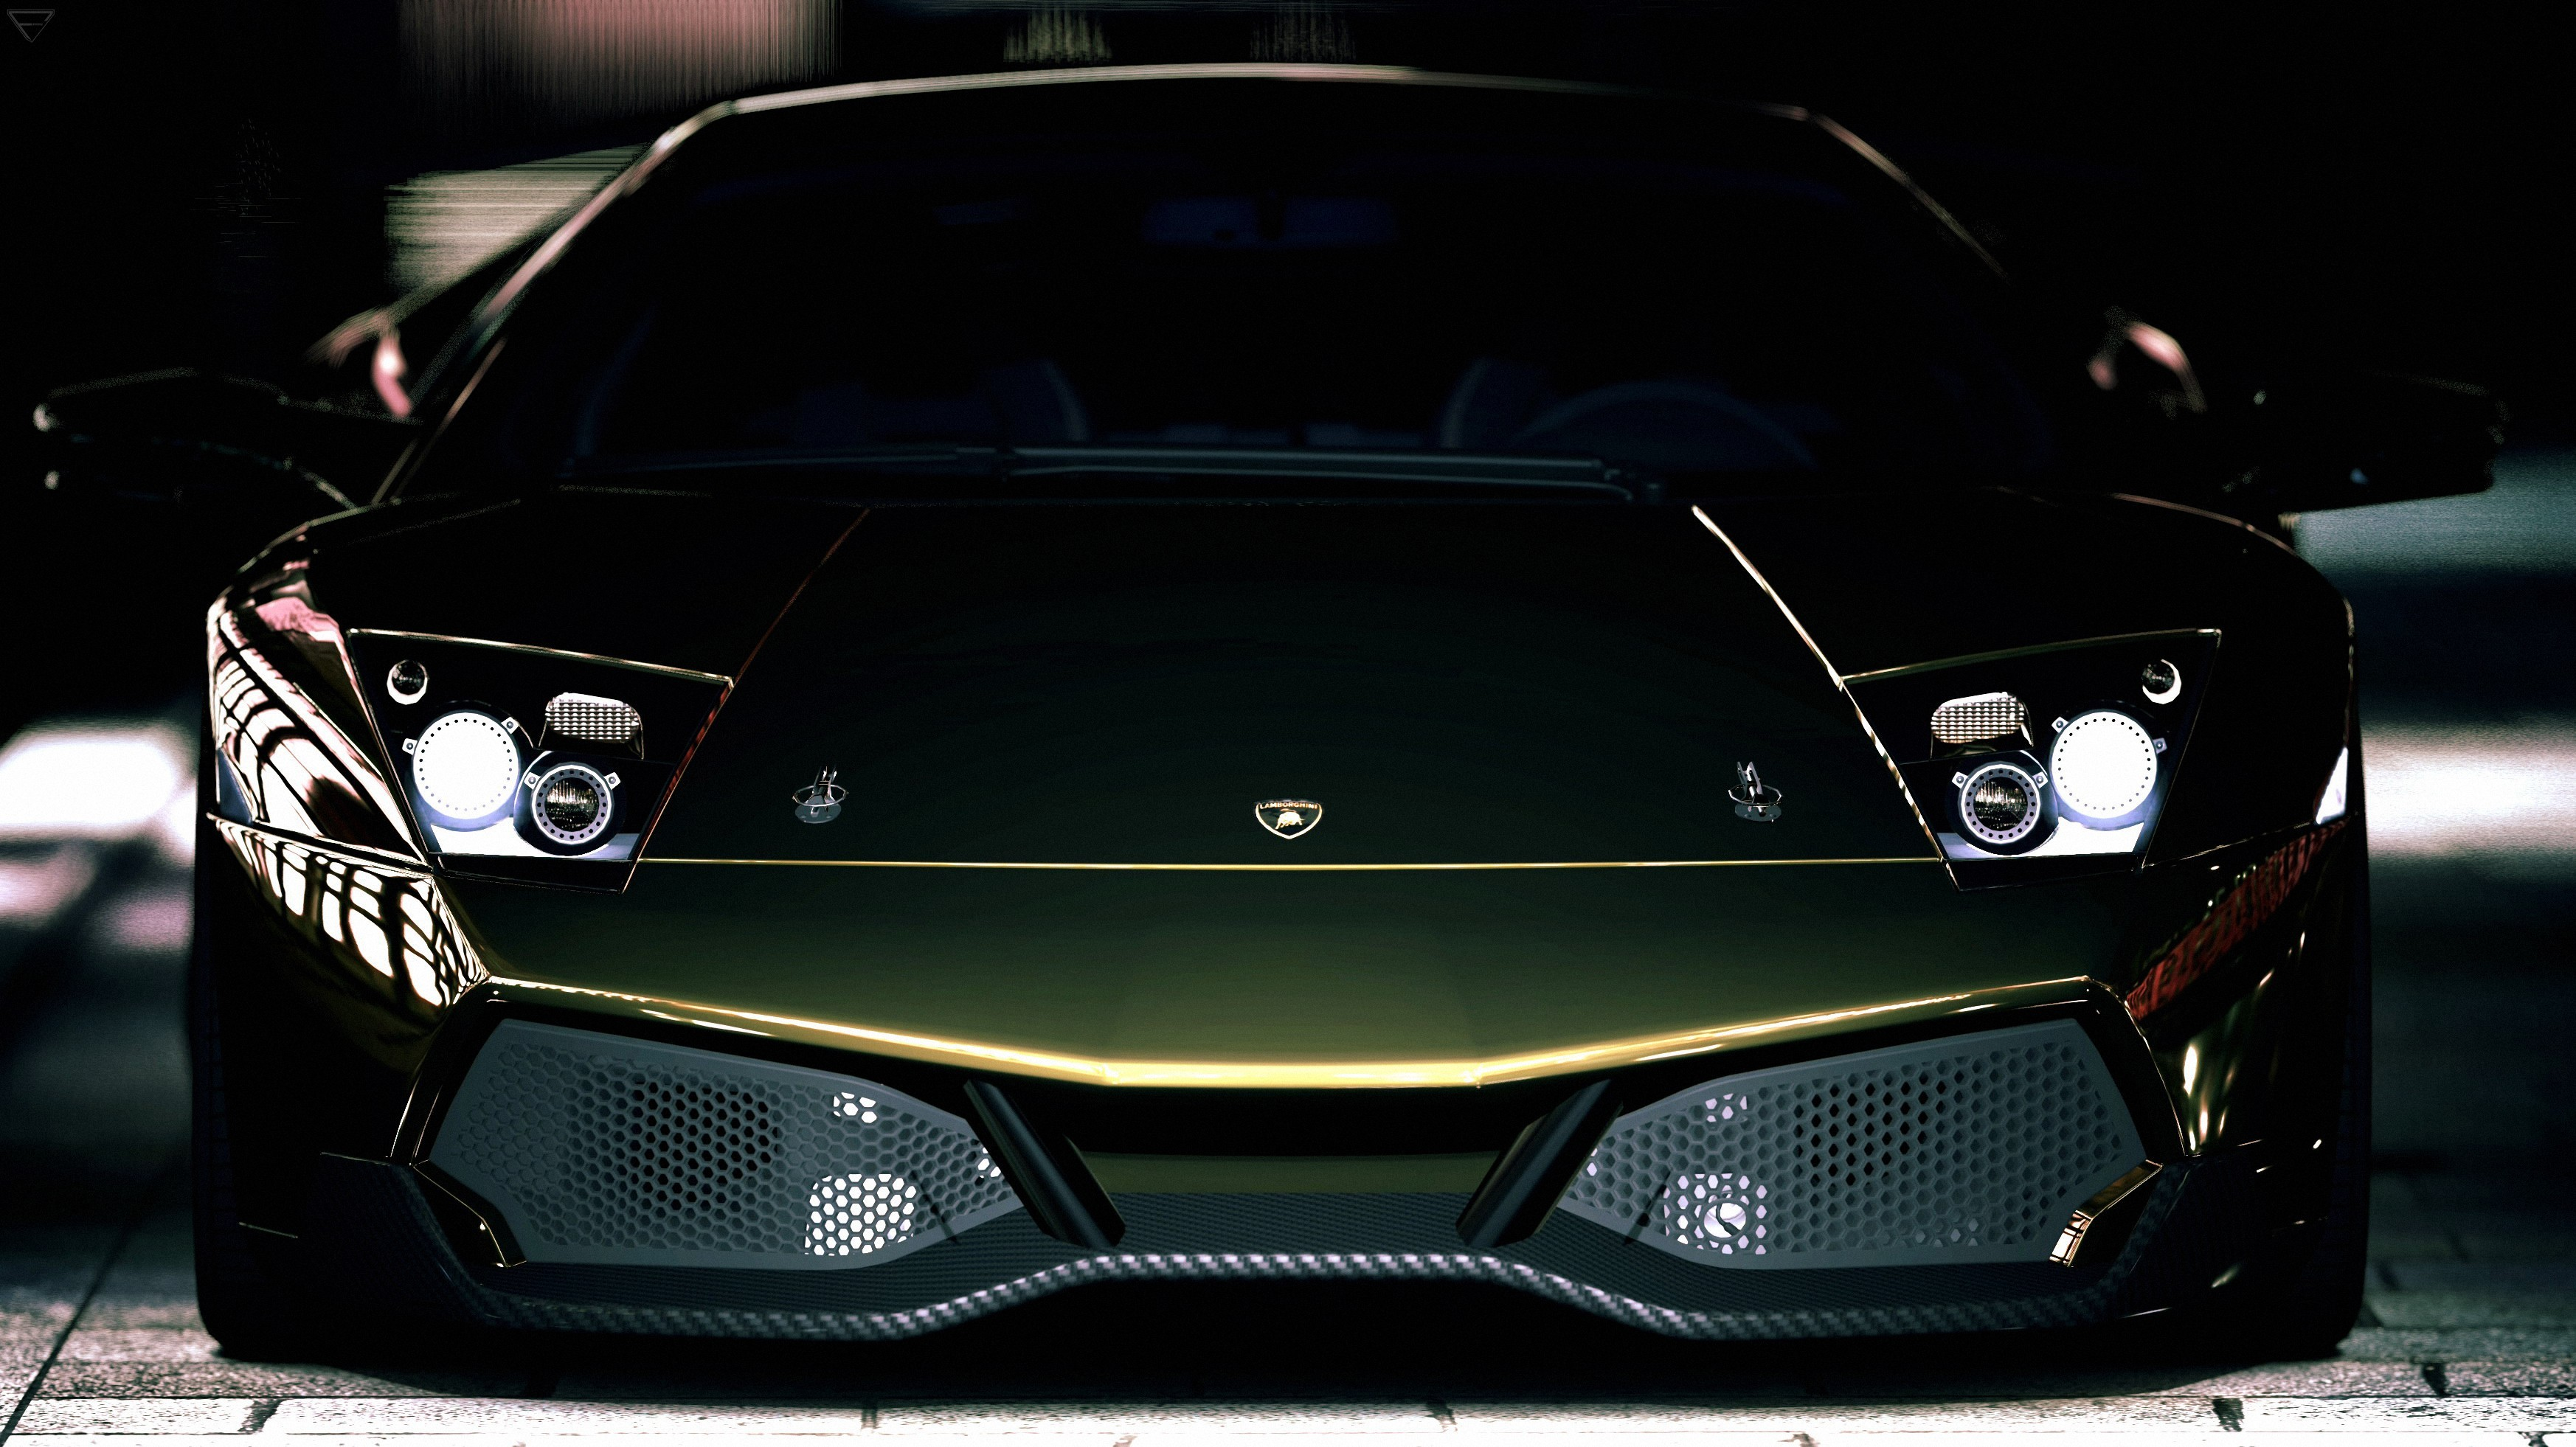 Green cars Lamborghini Lamborghini HD Wallpaper